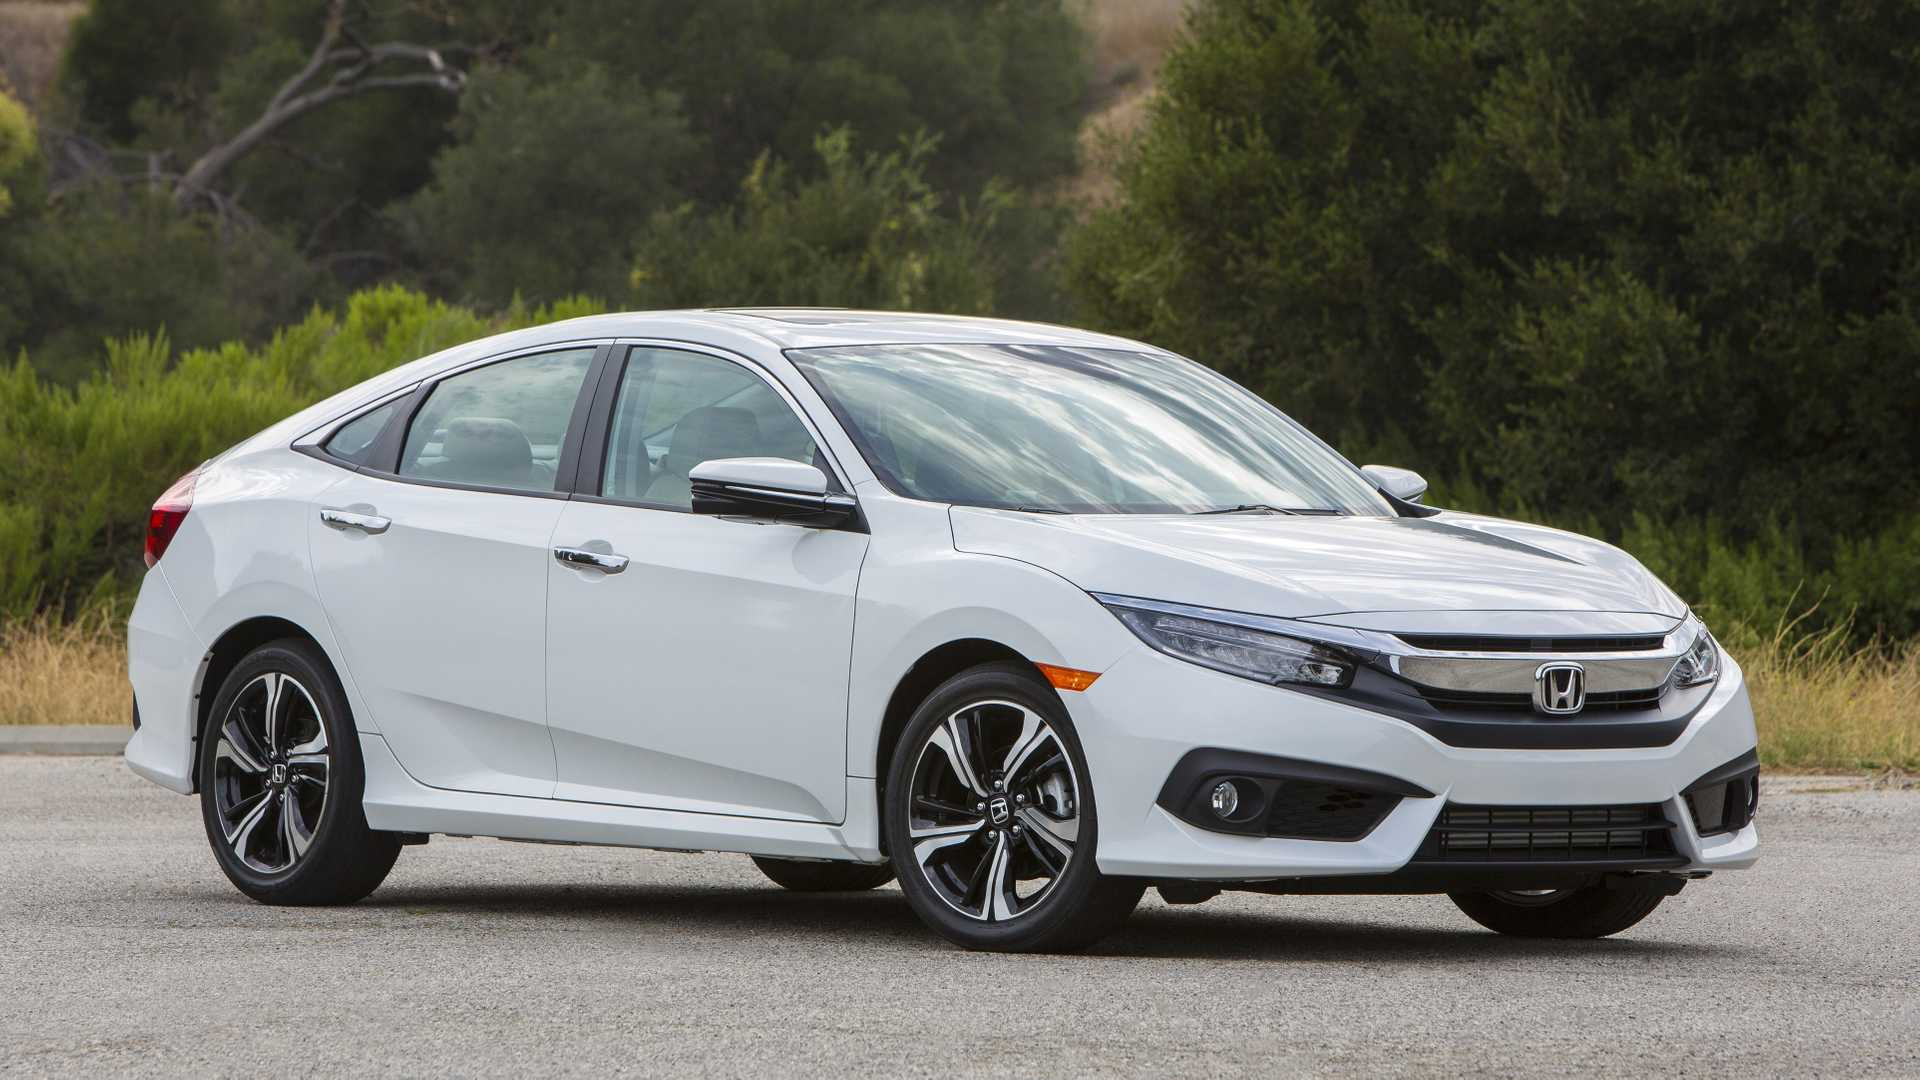 2017 Honda Civic Gas Mileage >> 10 Most Fuel Efficient Non Hybrid Electric Cars For 2019